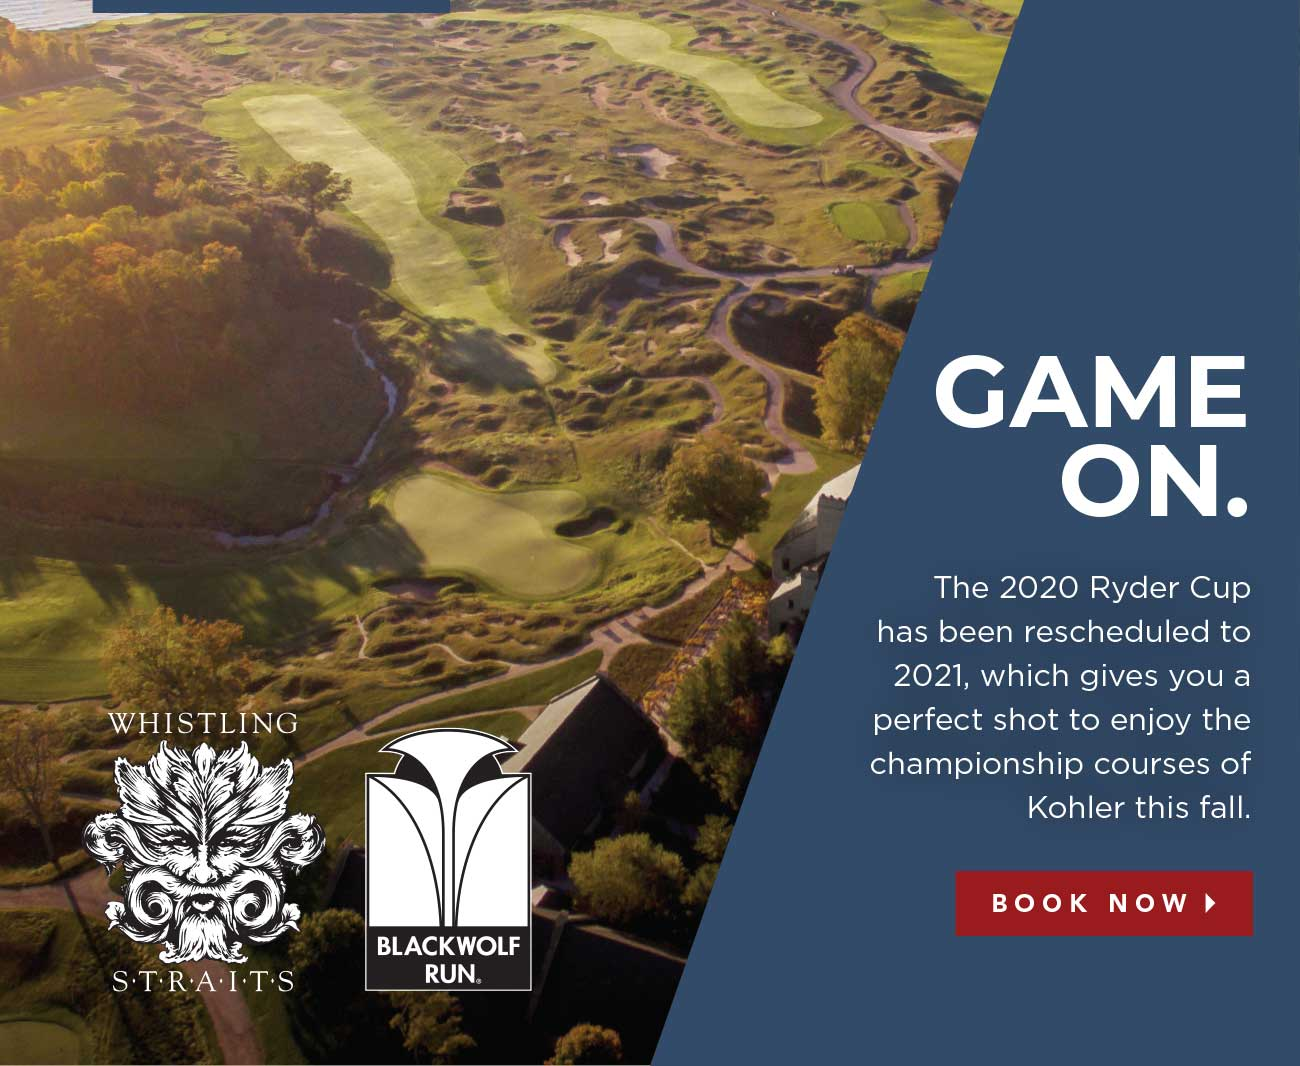 GAME ON. | The 2020 Ryder Cup has been rescheduled to 2021, which gives you a perfect shot to enjoy the championship courses of Kohler this fall. | BOOK NOW